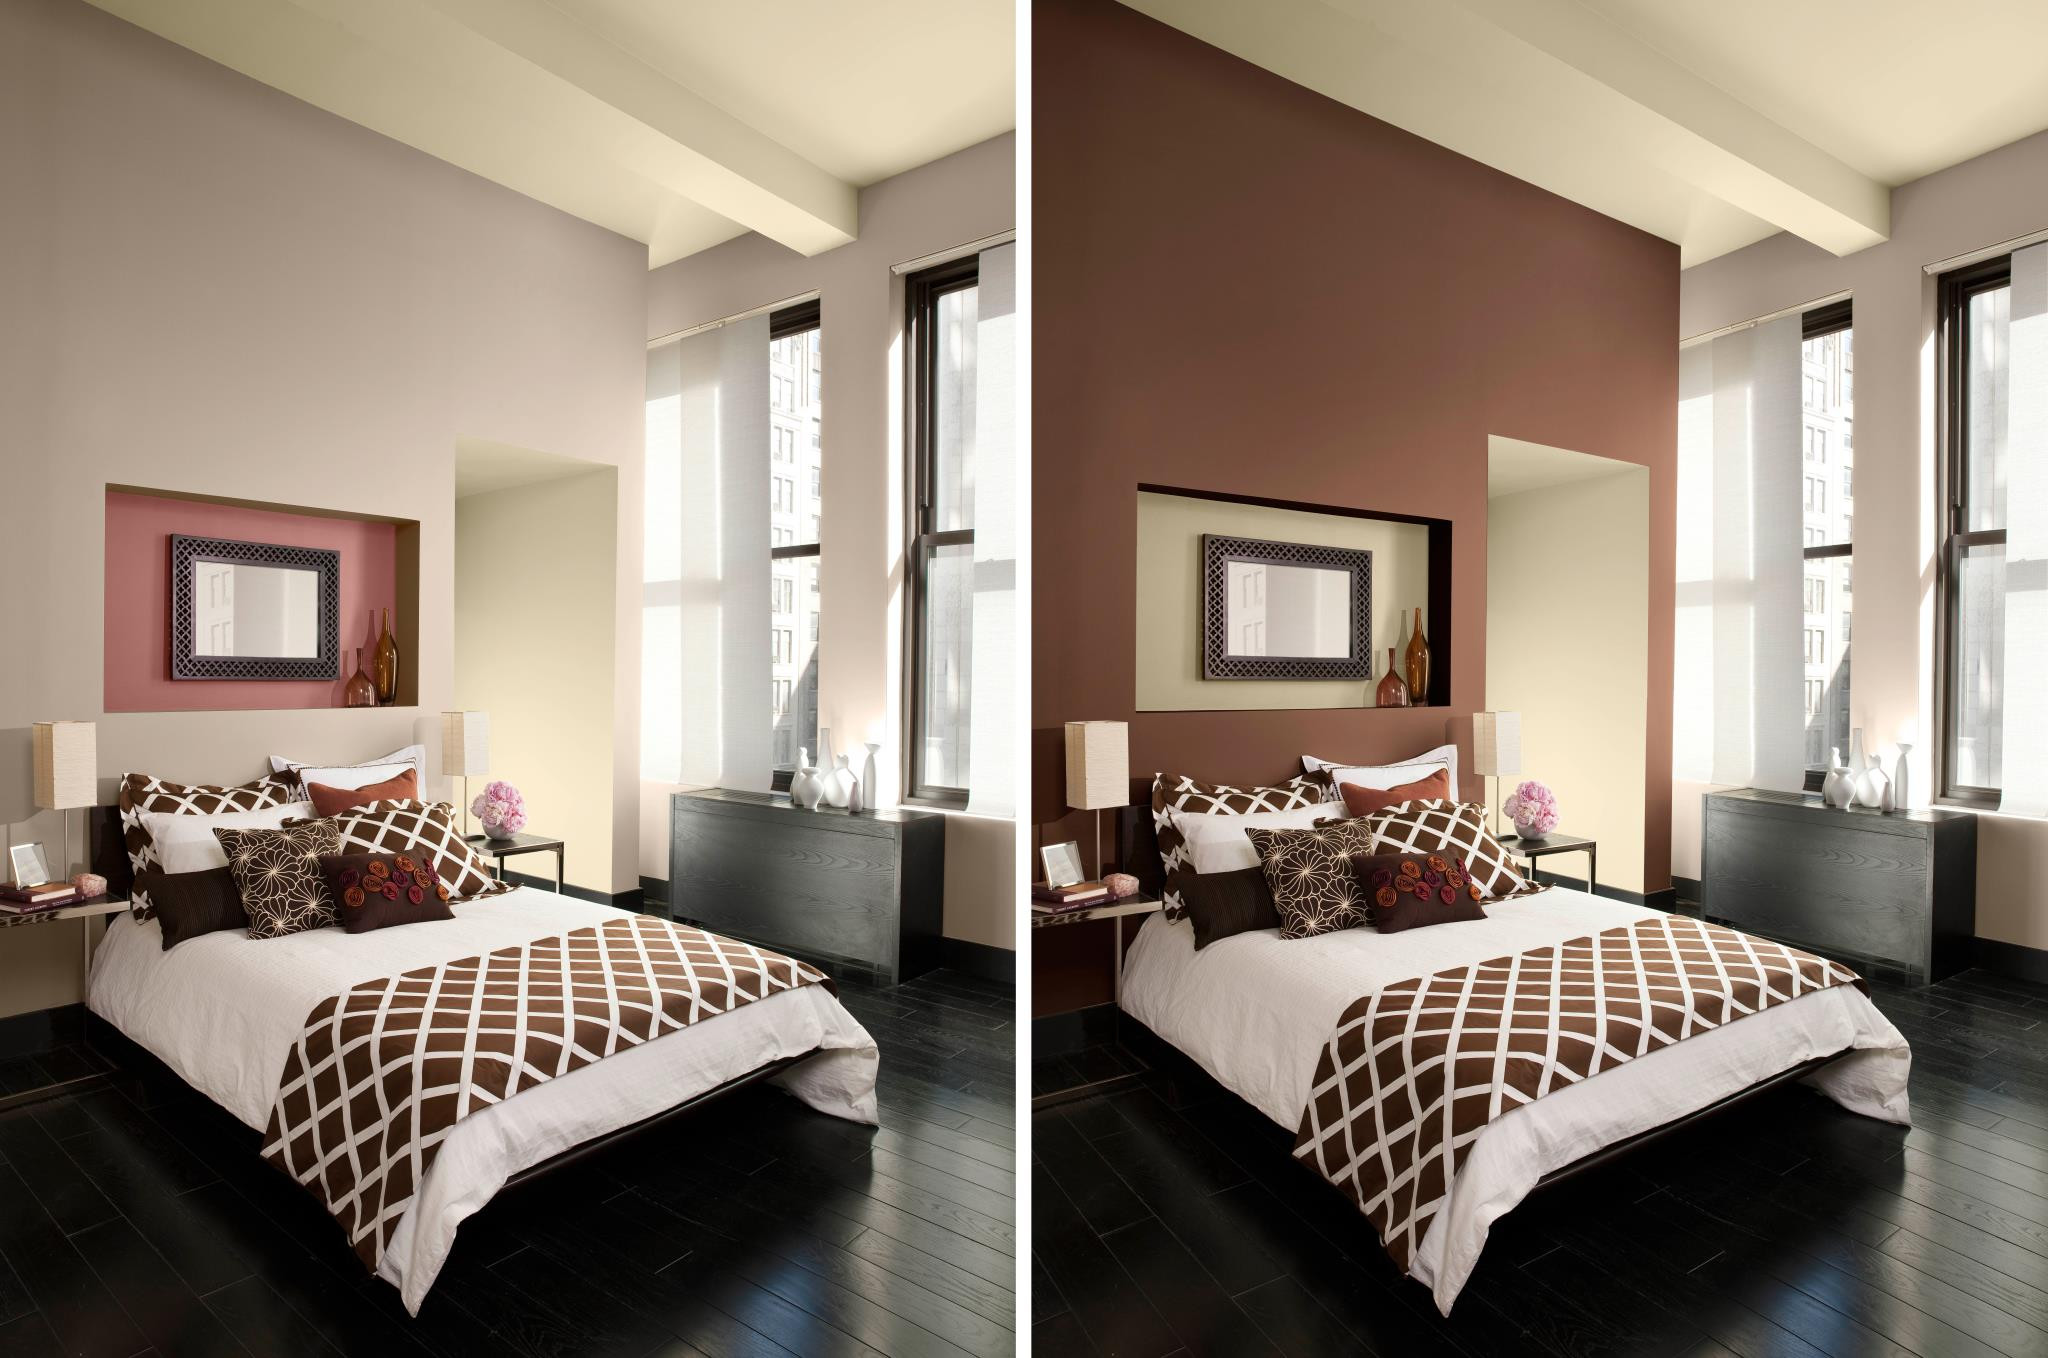 Best ideas about Accent Wall Painting . Save or Pin how to paint an accent wall Now.